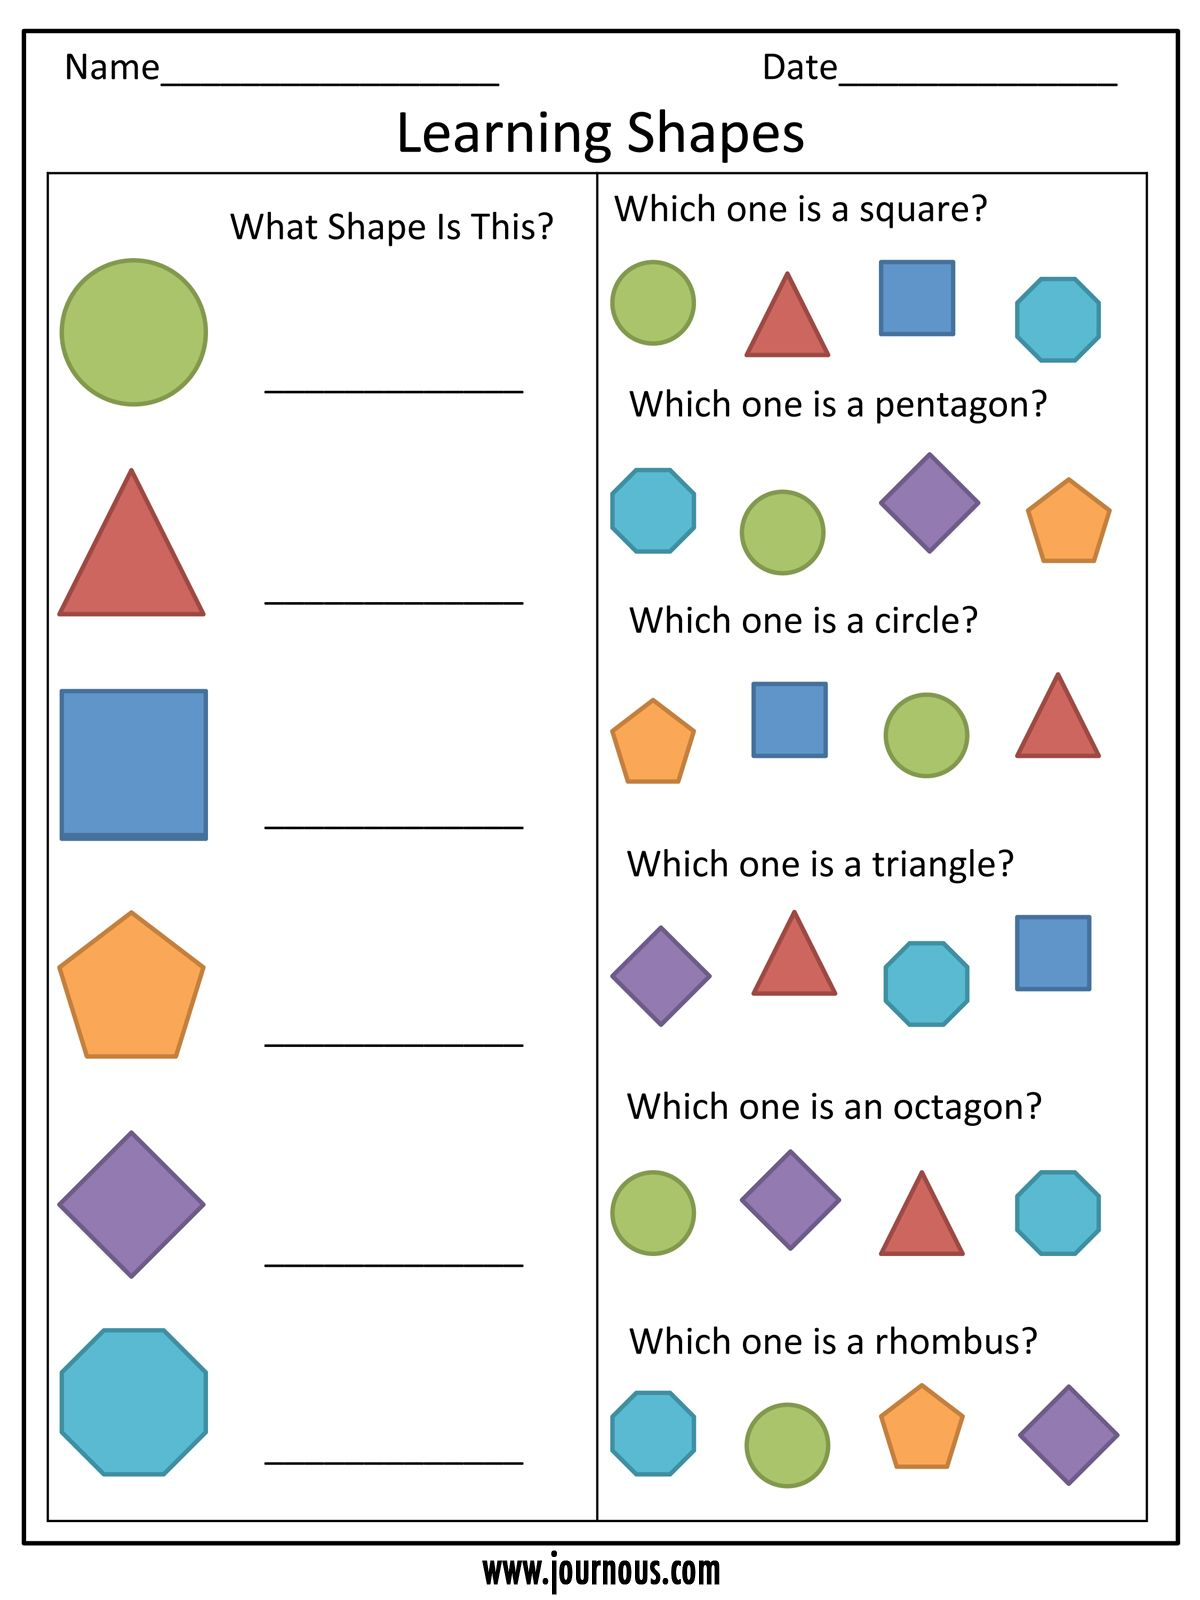 Learning Shapes Worksheet For Kindergarten